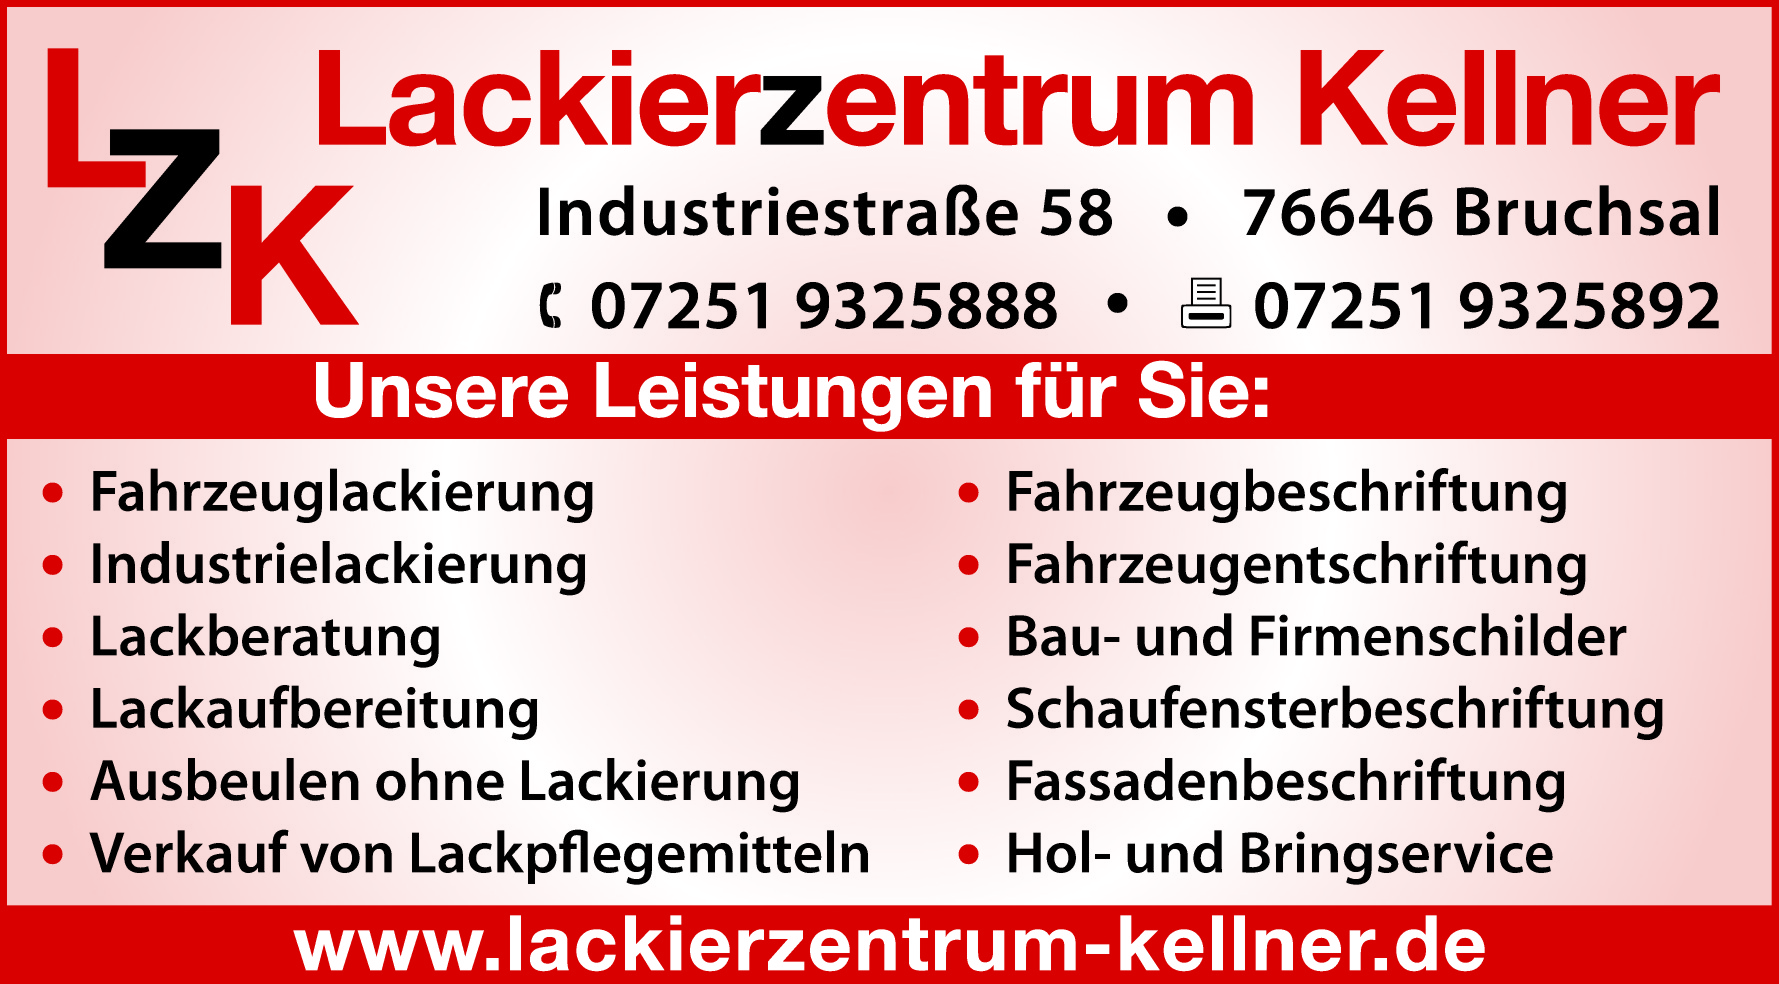 Lackierzentrum Kellner